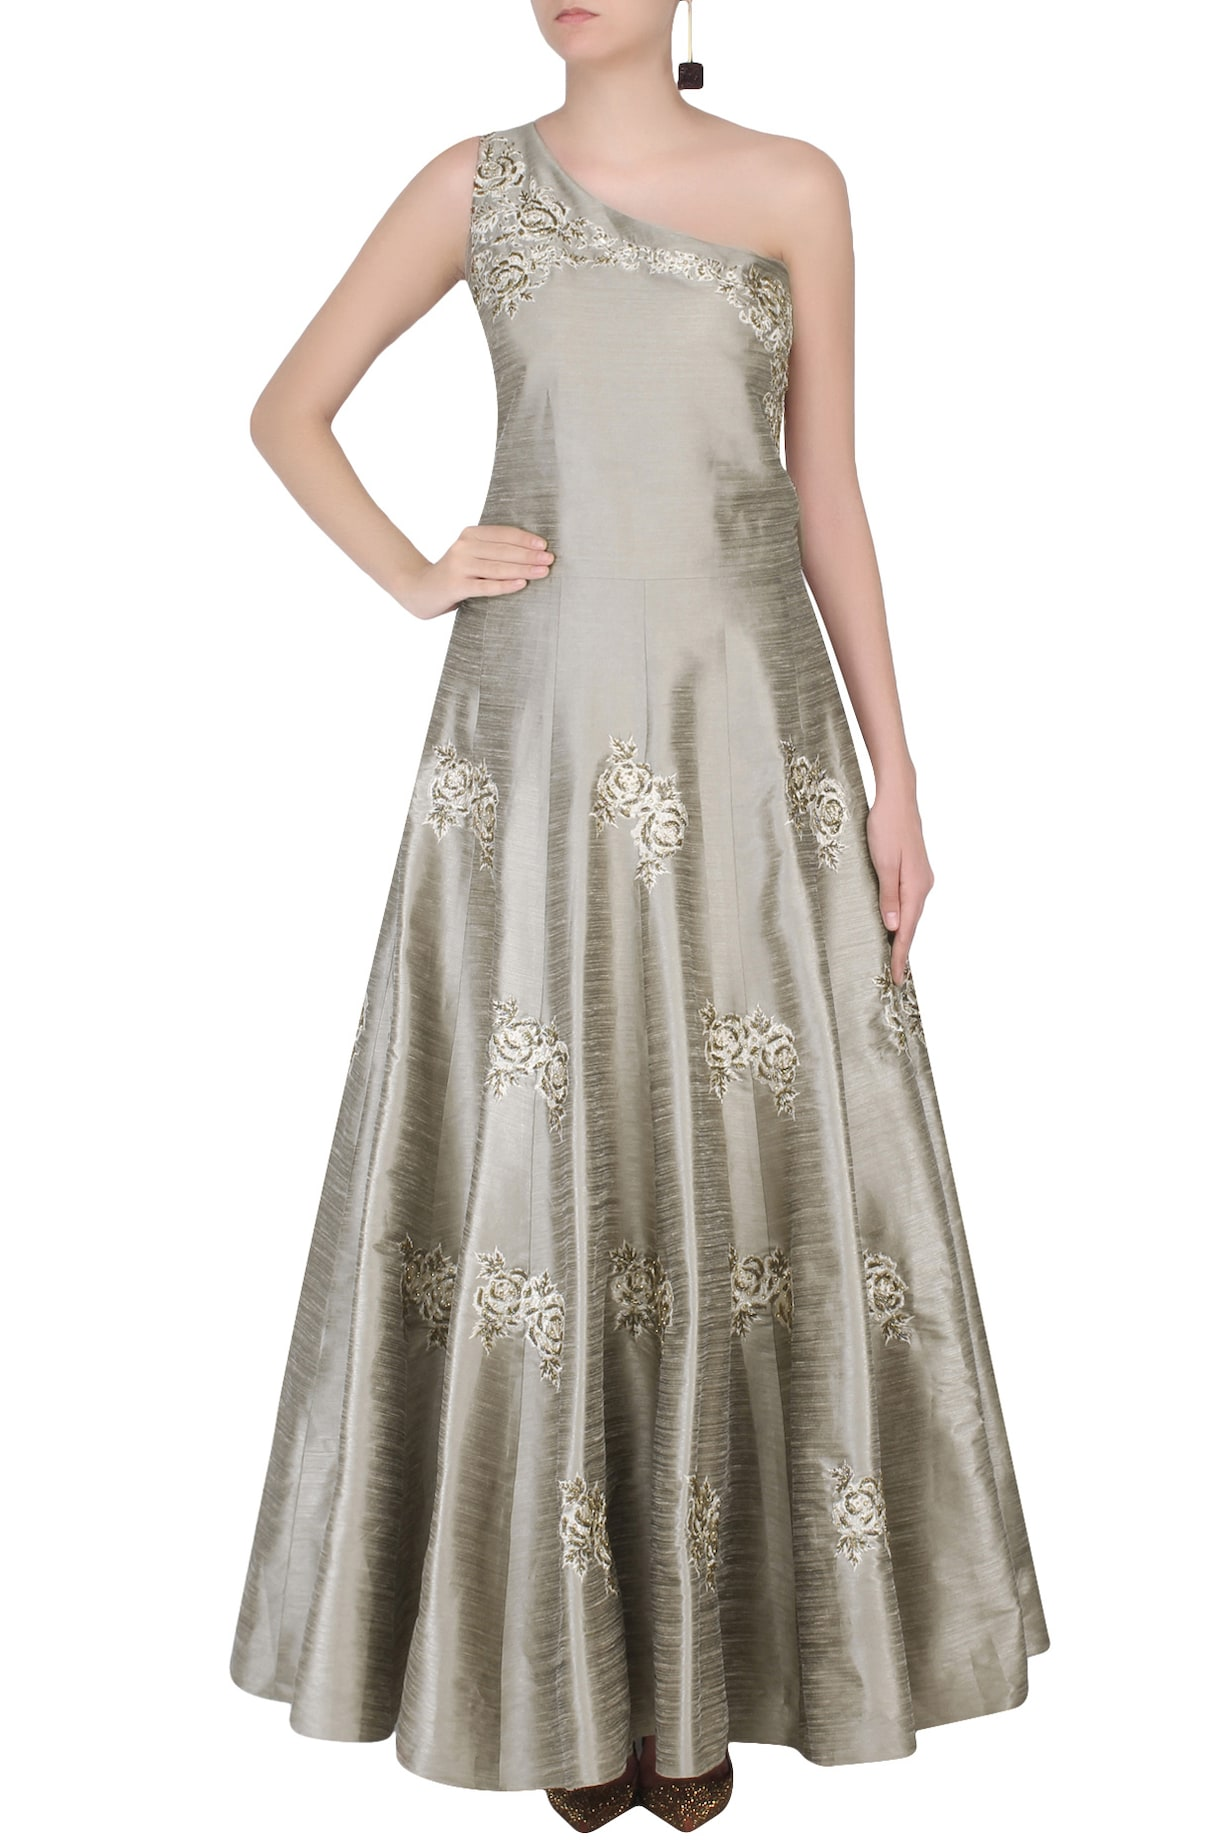 Dimple Raghani Gowns